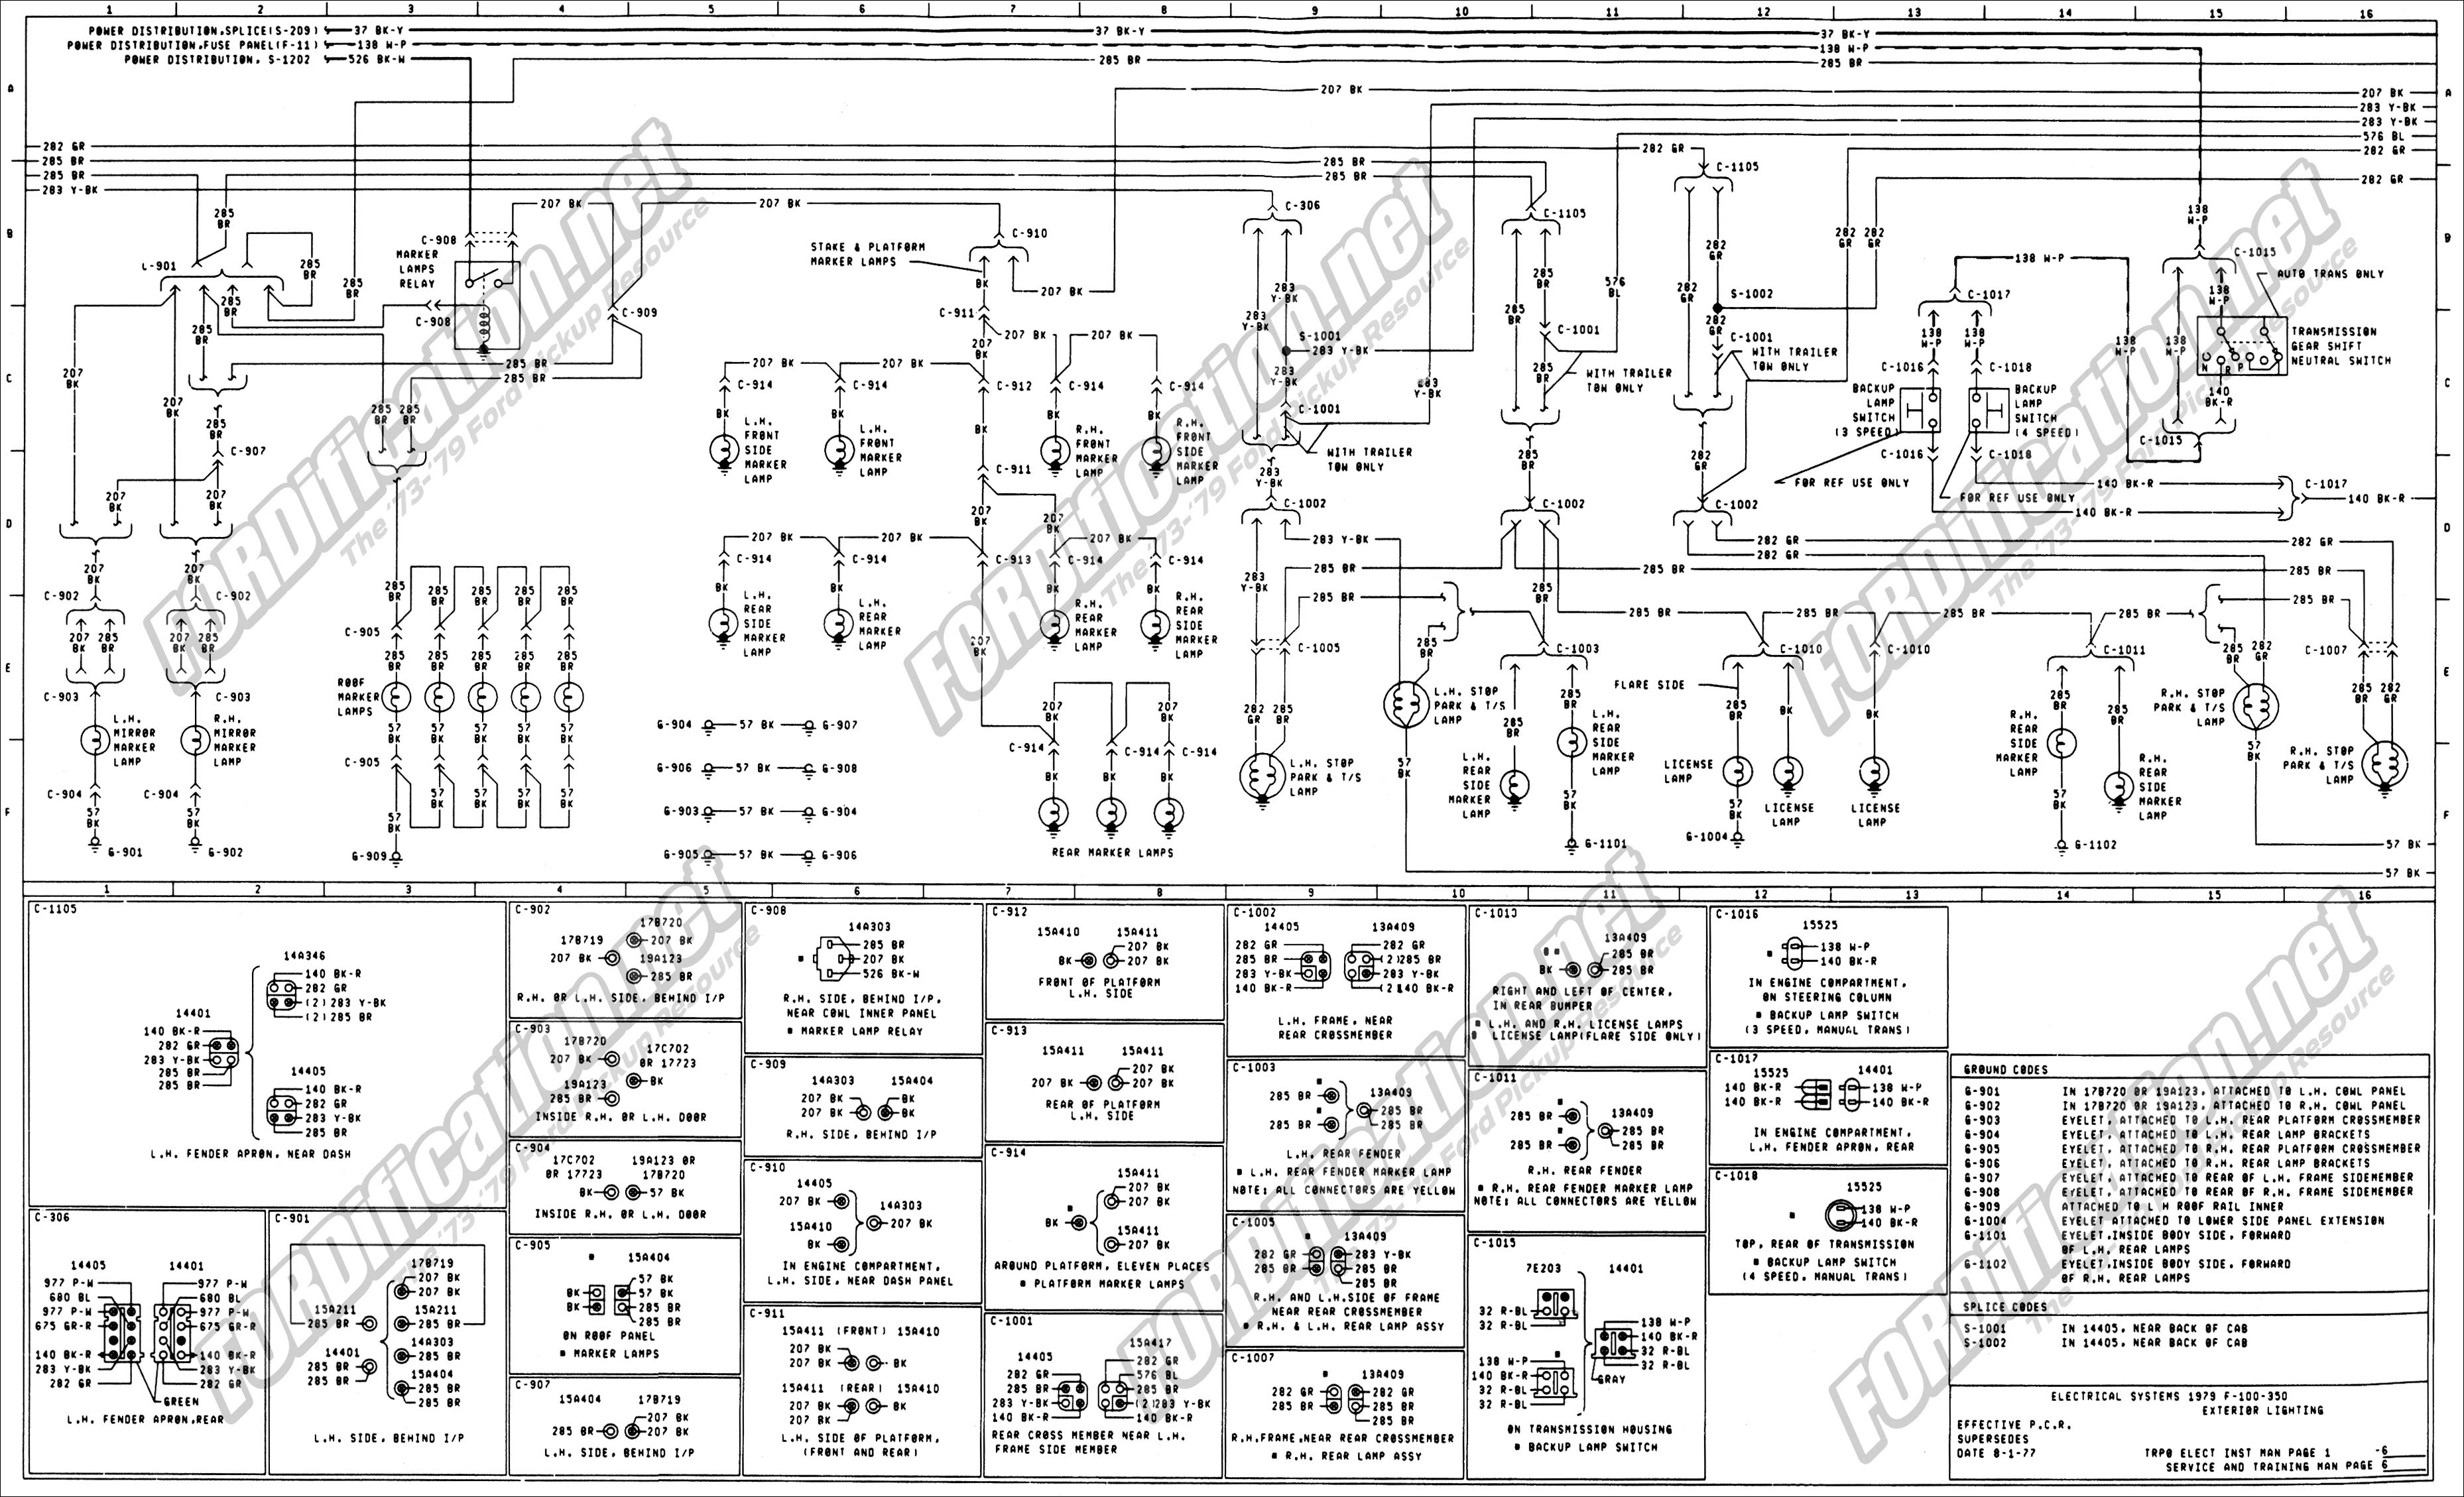 1978 Ford F 250 Wiring Diagram Simple Electrical Voltage Regulator 1986 350 1973 1979 Truck Diagrams Schematics Fordification Net 5 8